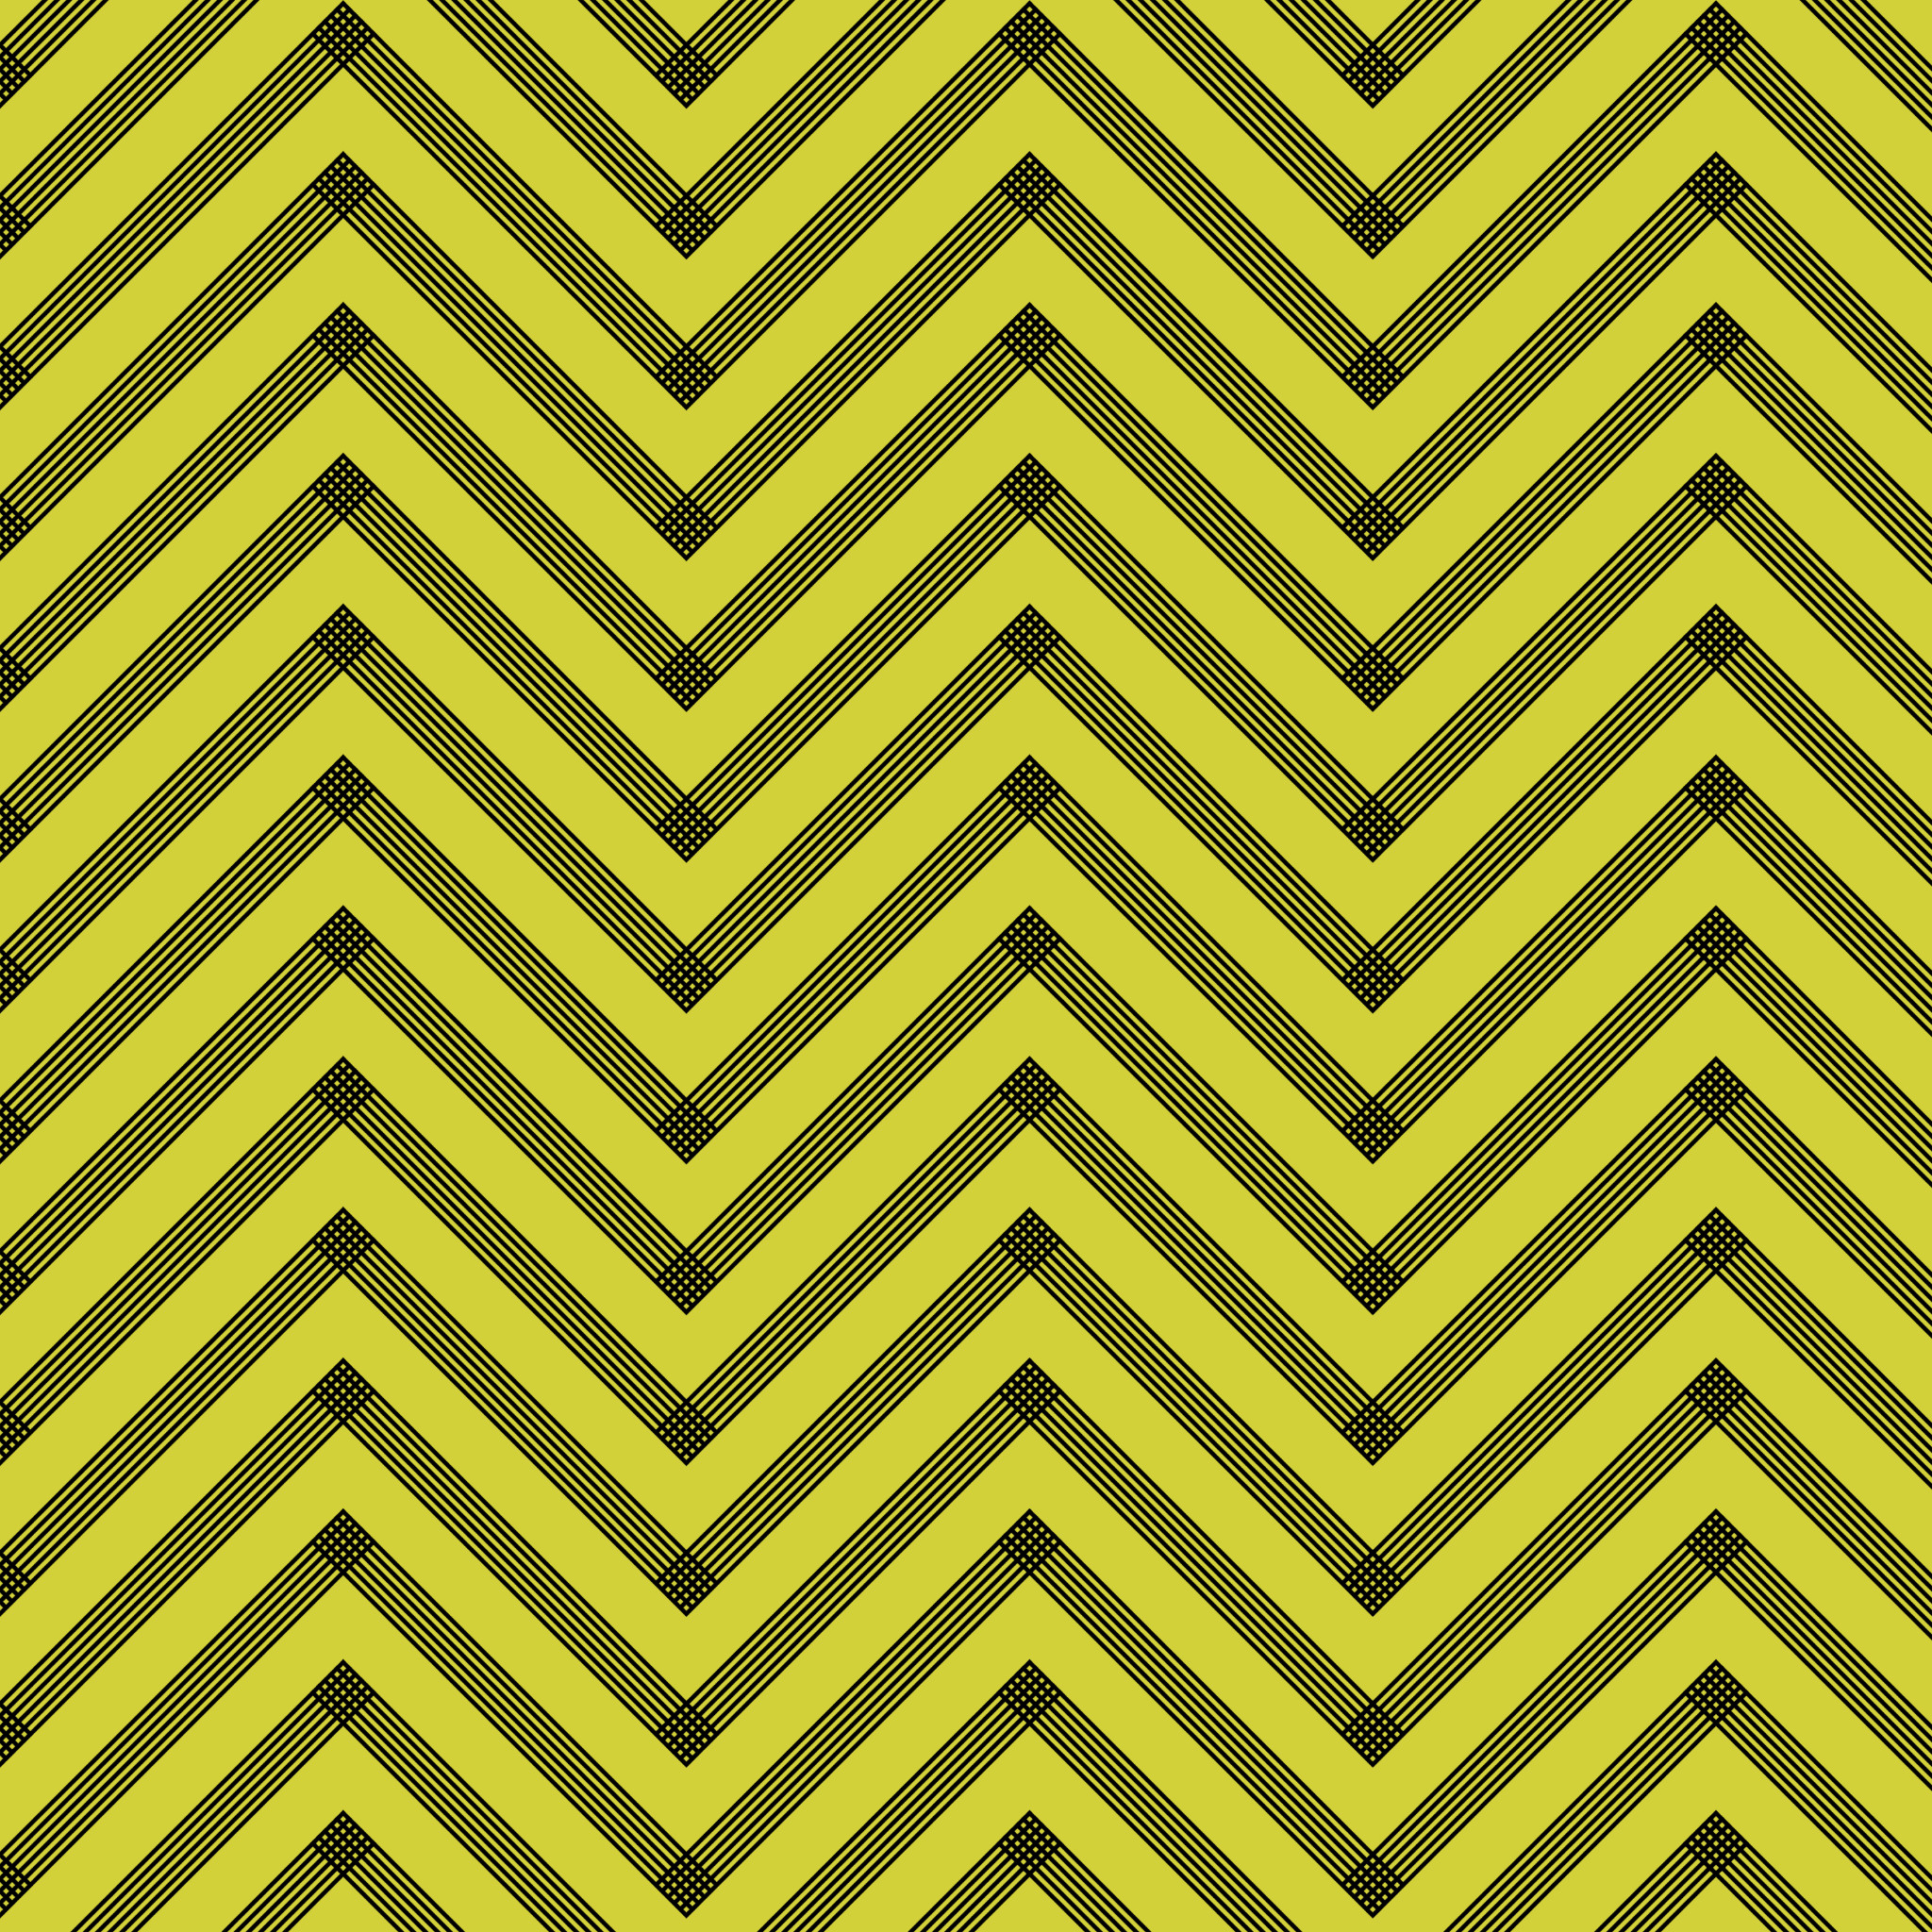 Yellow Chevron Wallpaper 2048x2048